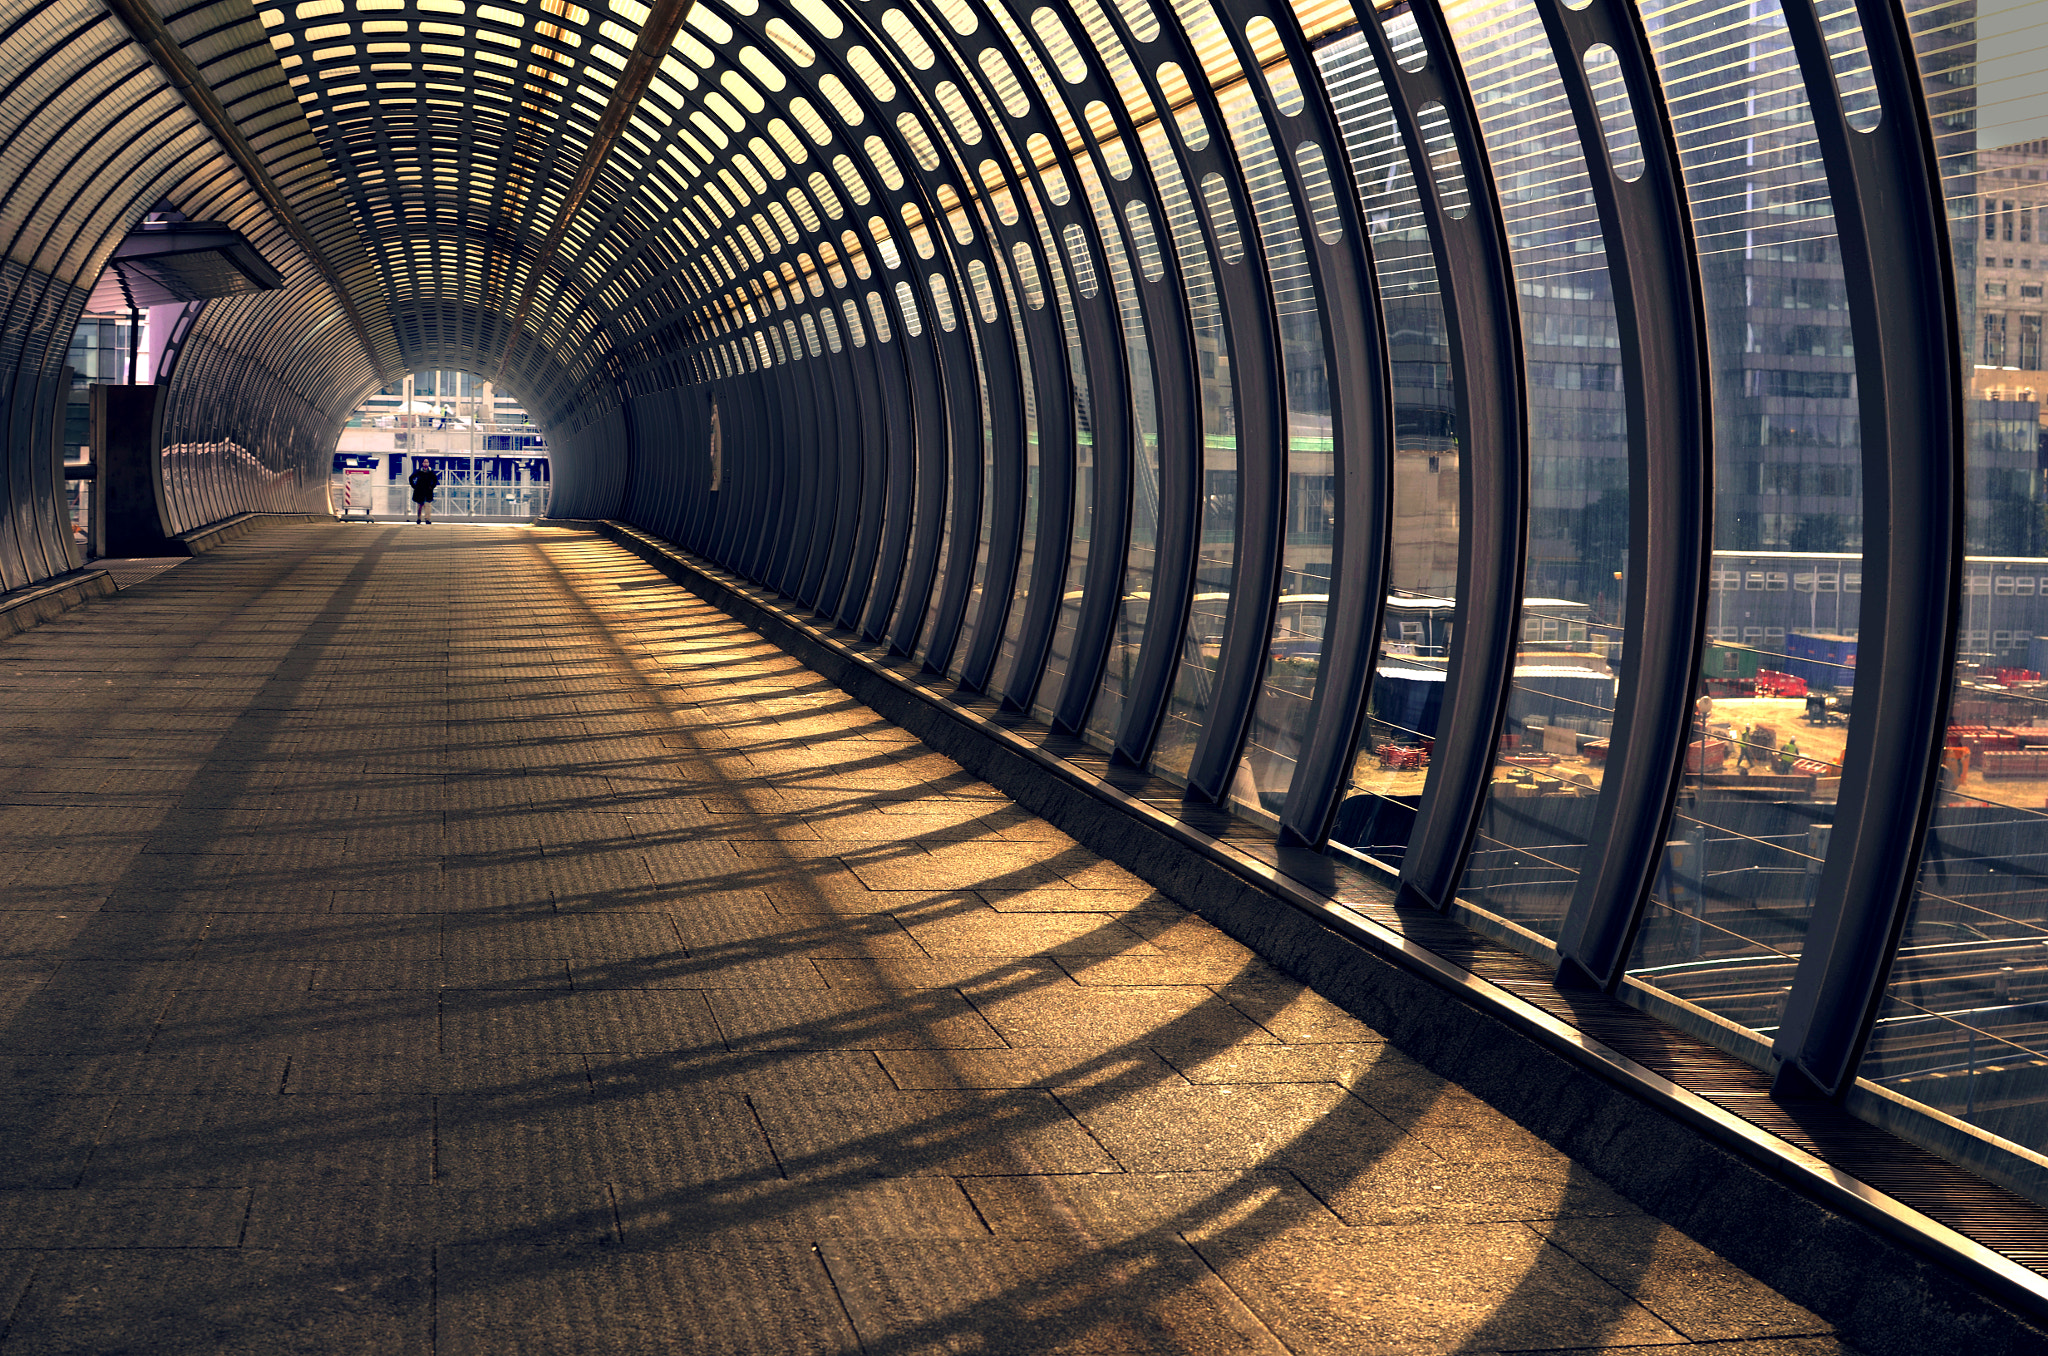 Photograph within the structure by M  on 500px